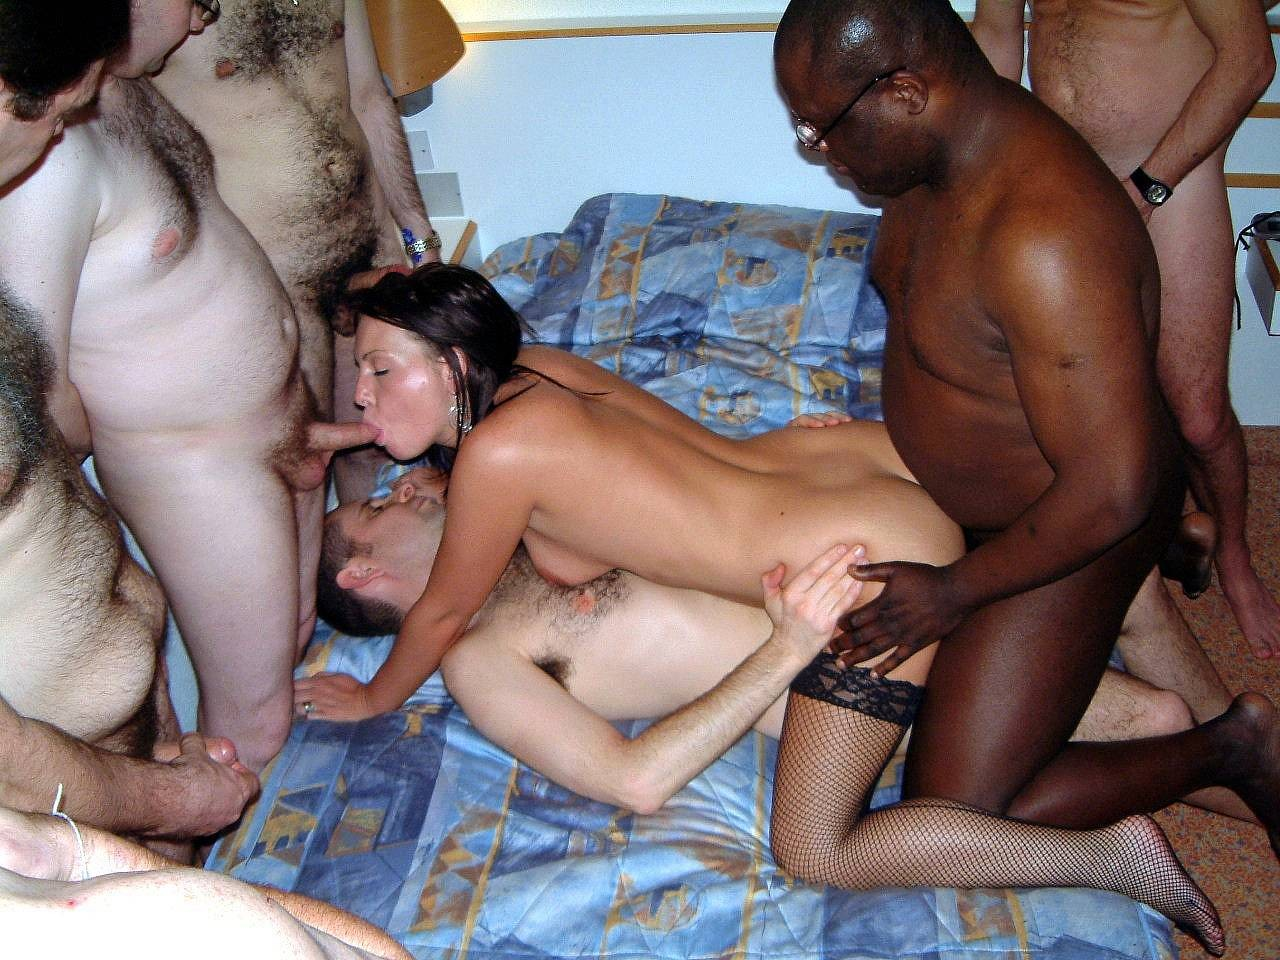 Dixon reel home made interracial vids still believe Jayden